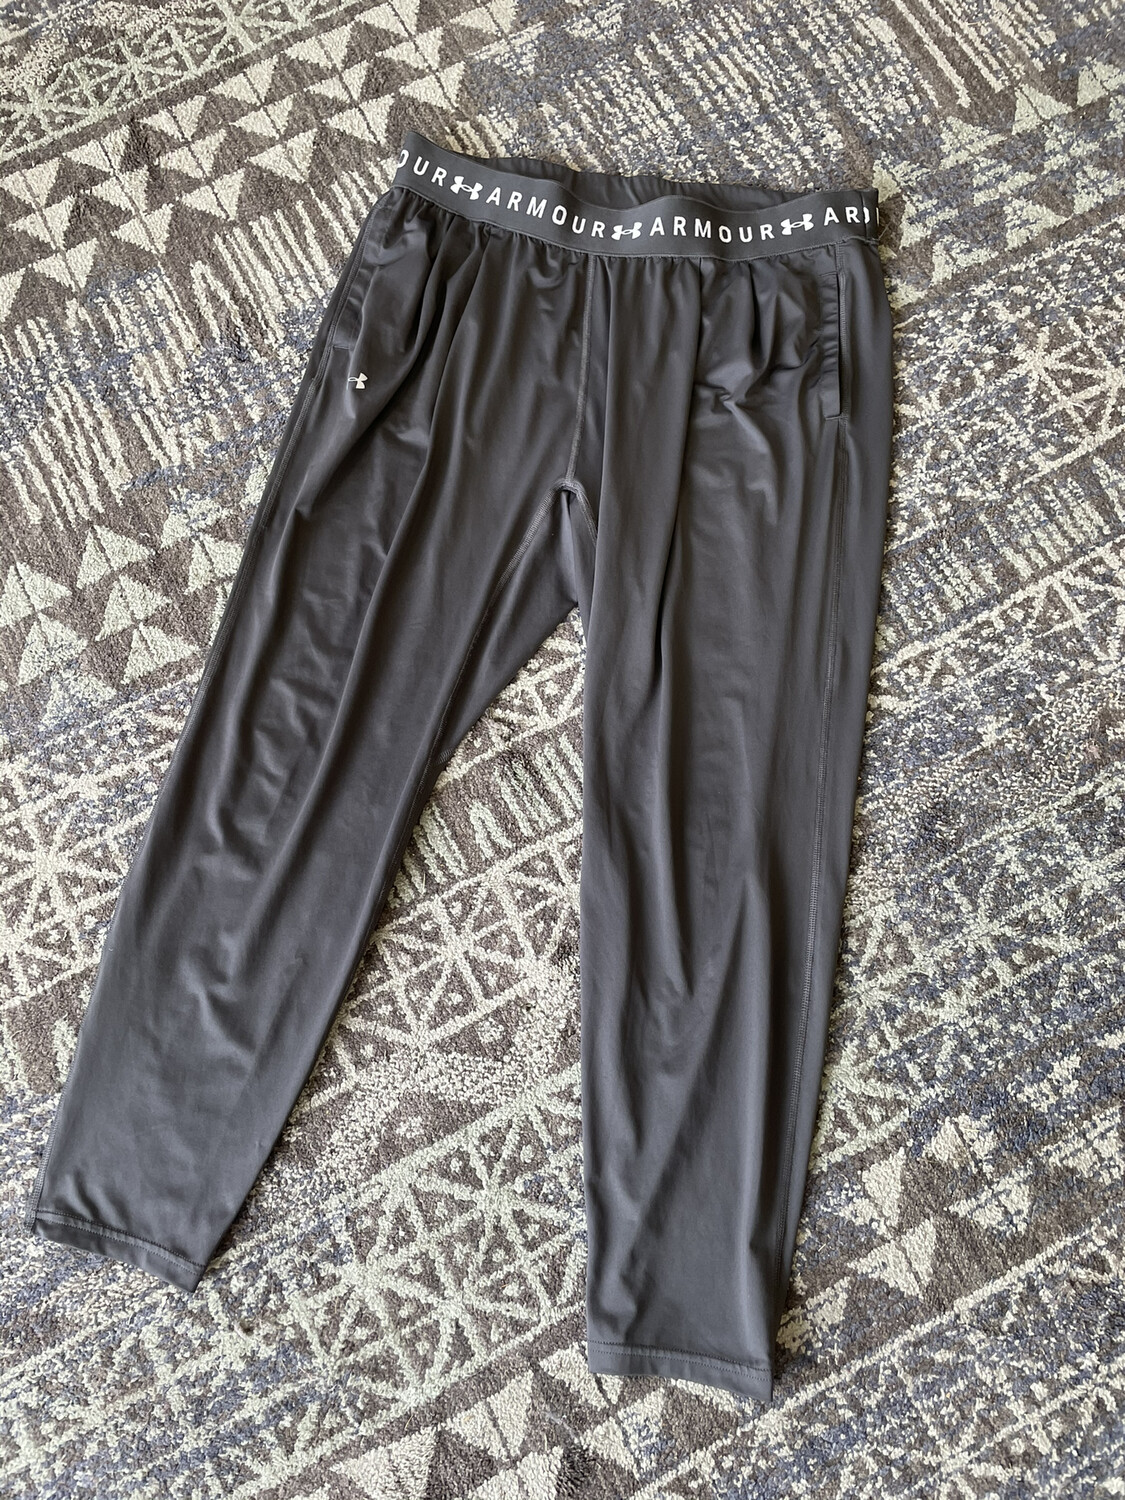 Under Armour Gray Athletic Pants with Pockets - XL